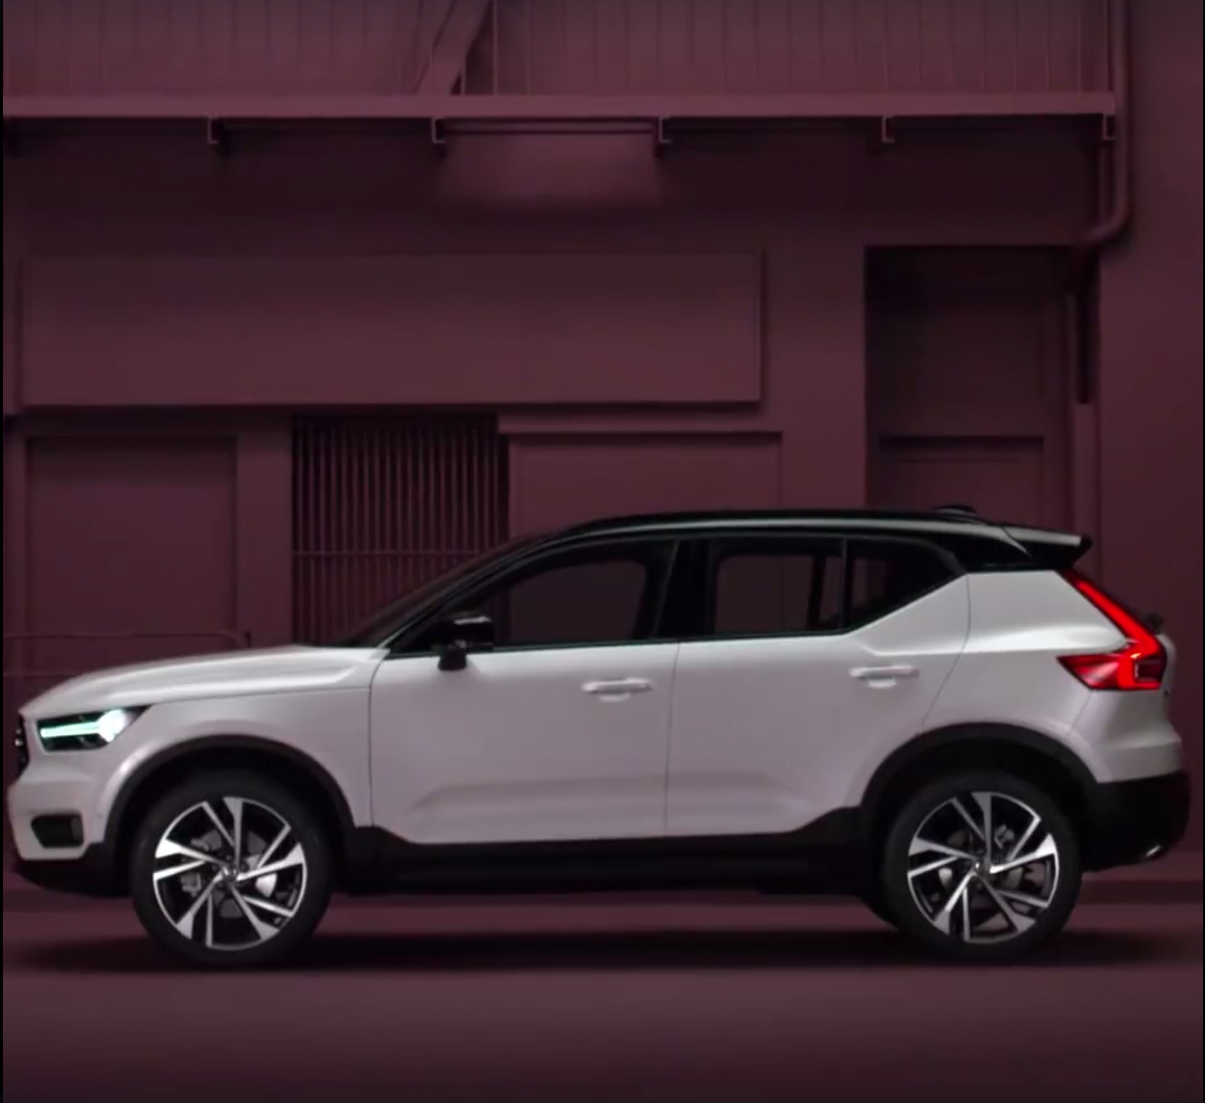 Volvo Accidentally Reveals 2018 XC40 SUV!